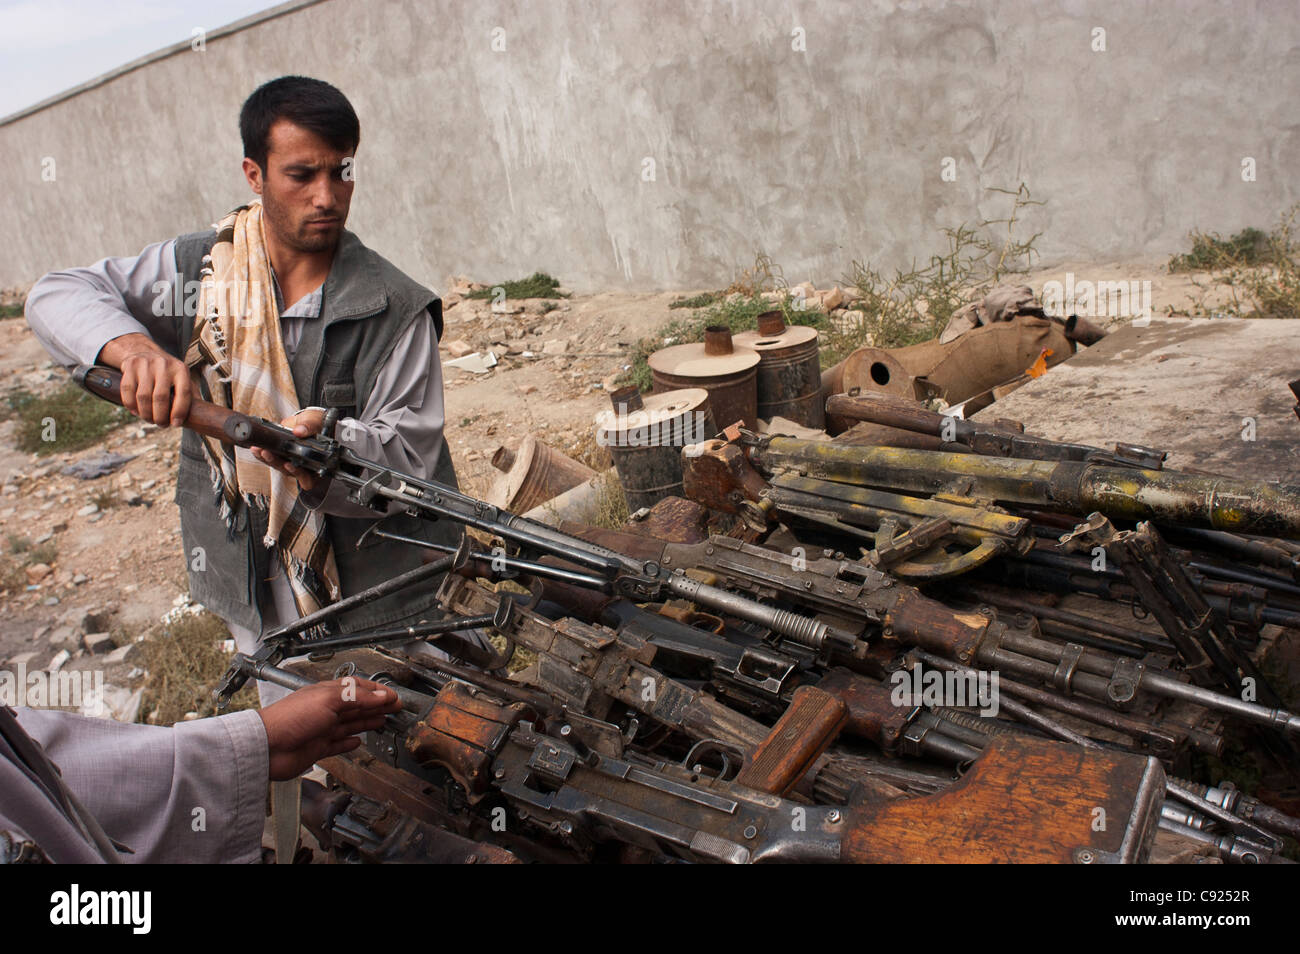 Former militia look at weapons at an army base, as part of a UN DDR program in Kabul, Afghanistan Stock Photo